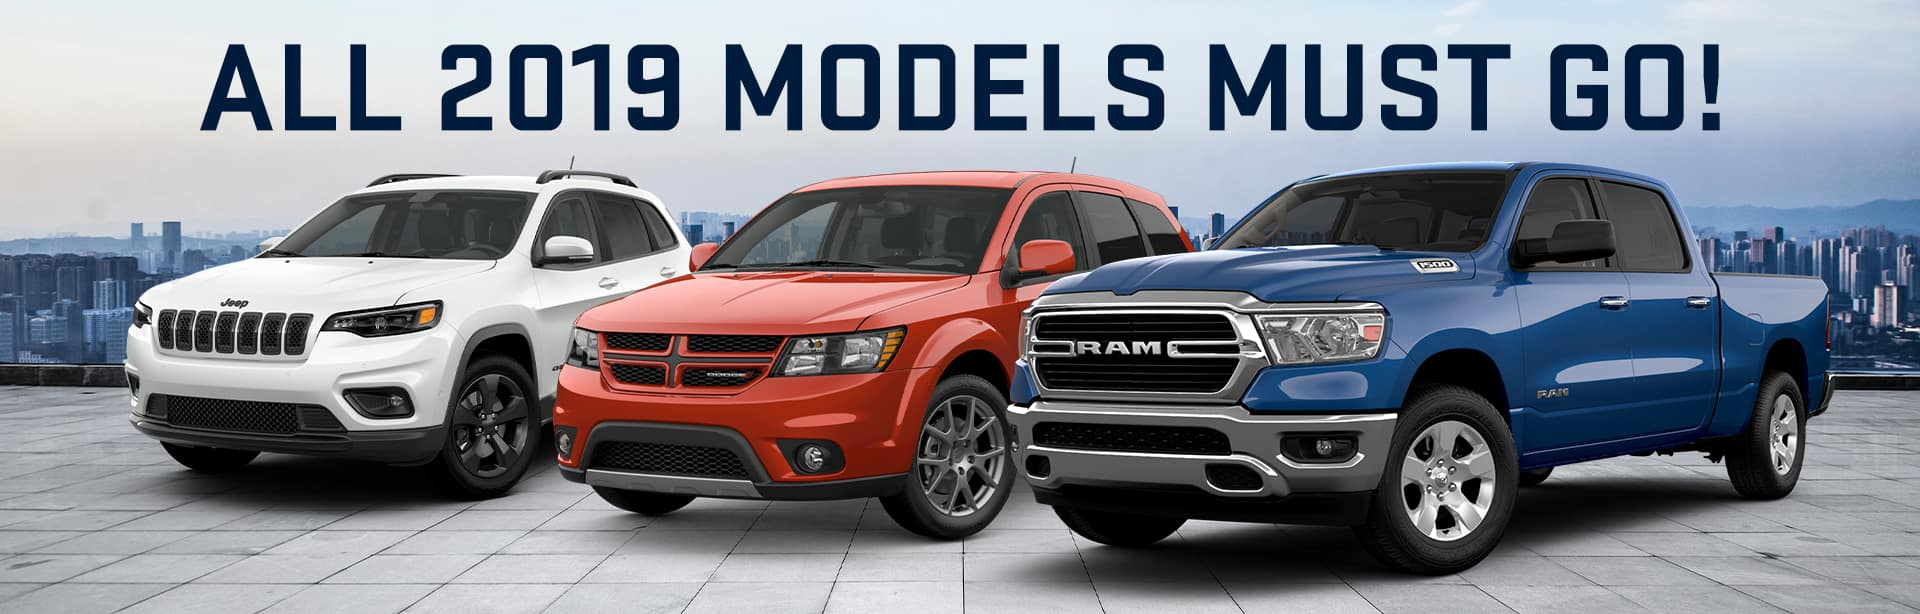 All 2019 Models must go at Shepherds CDJR in Auburn, Indiana